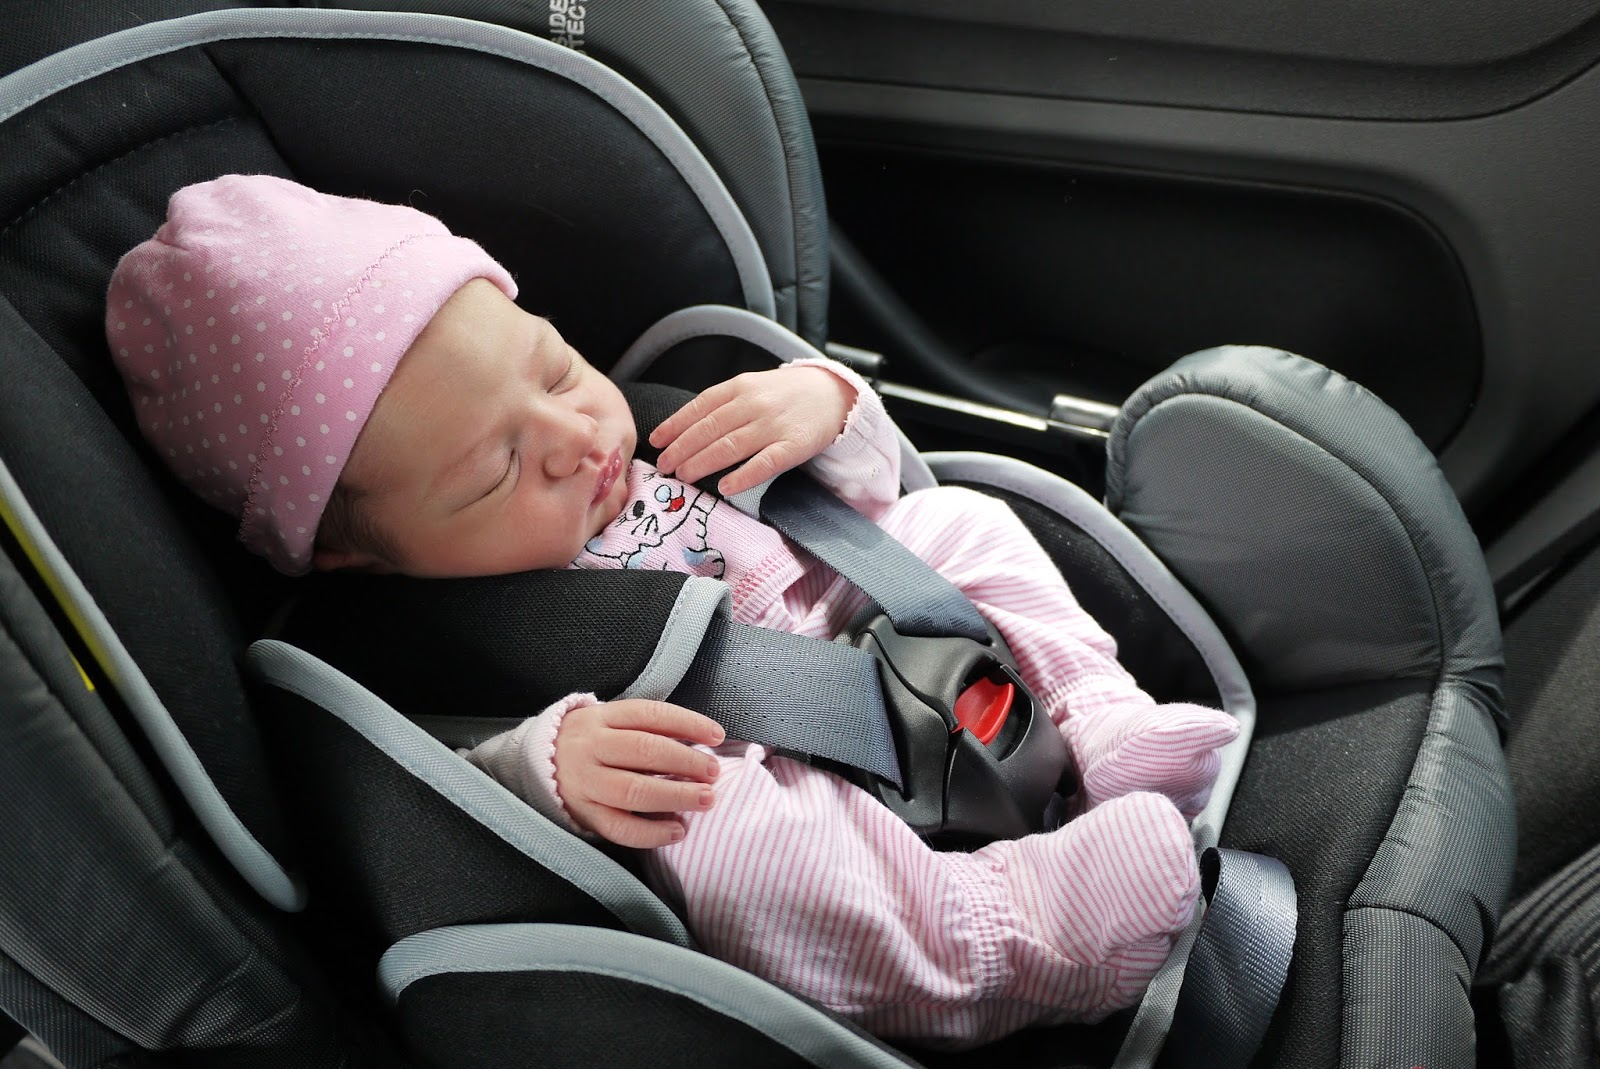 Our experience with ERF car seat